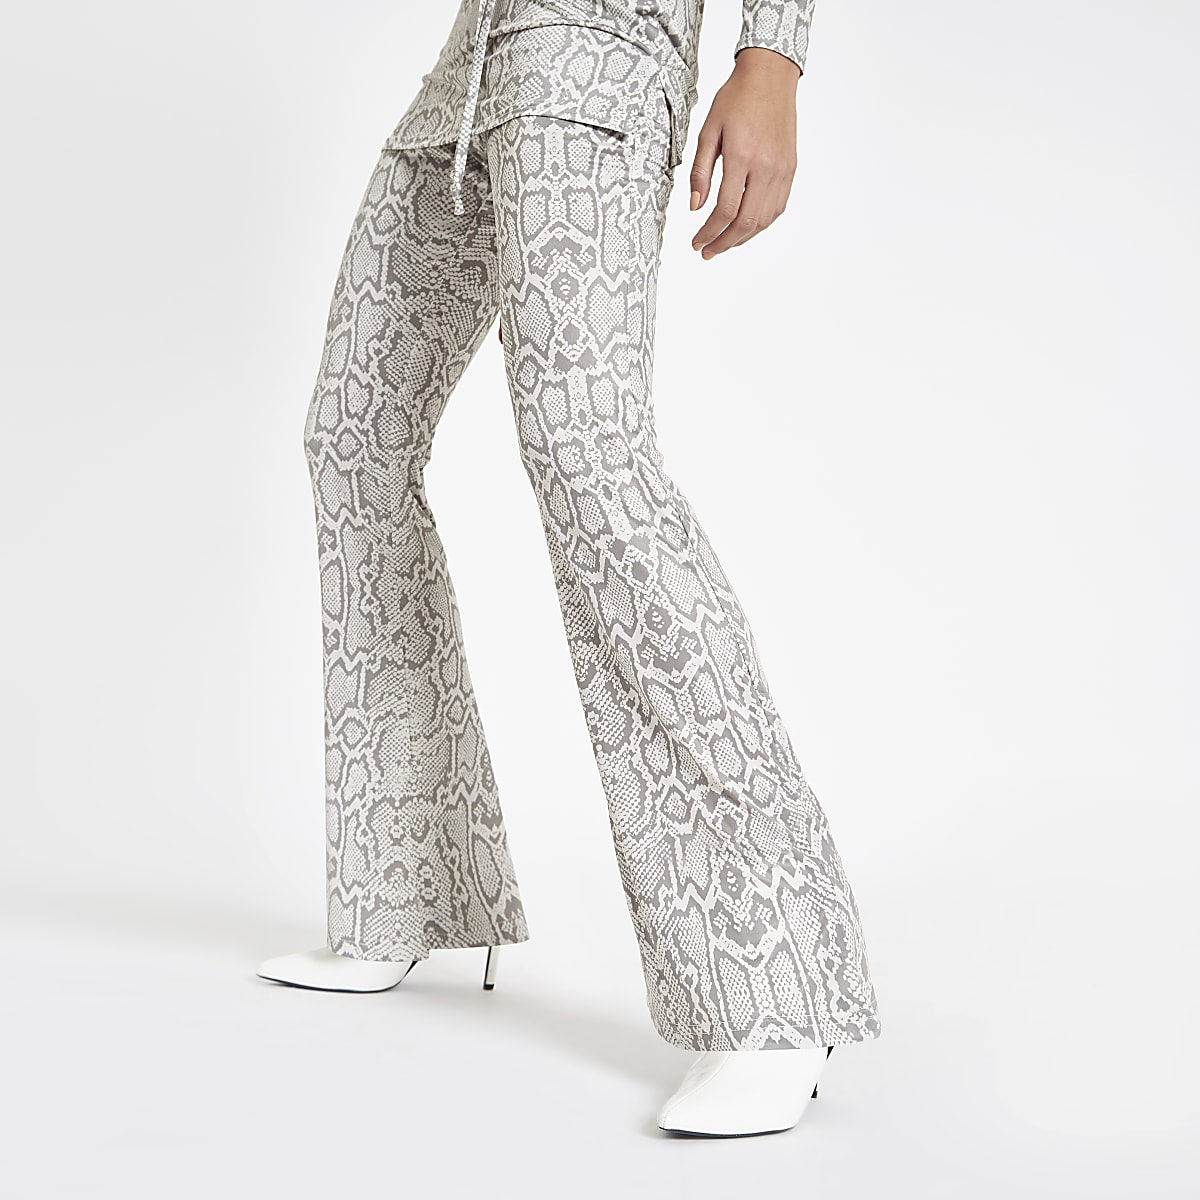 55a946ac0d Grey snake print flared jersey trousers - Clothing - Coordinates & Matching  Sets - women